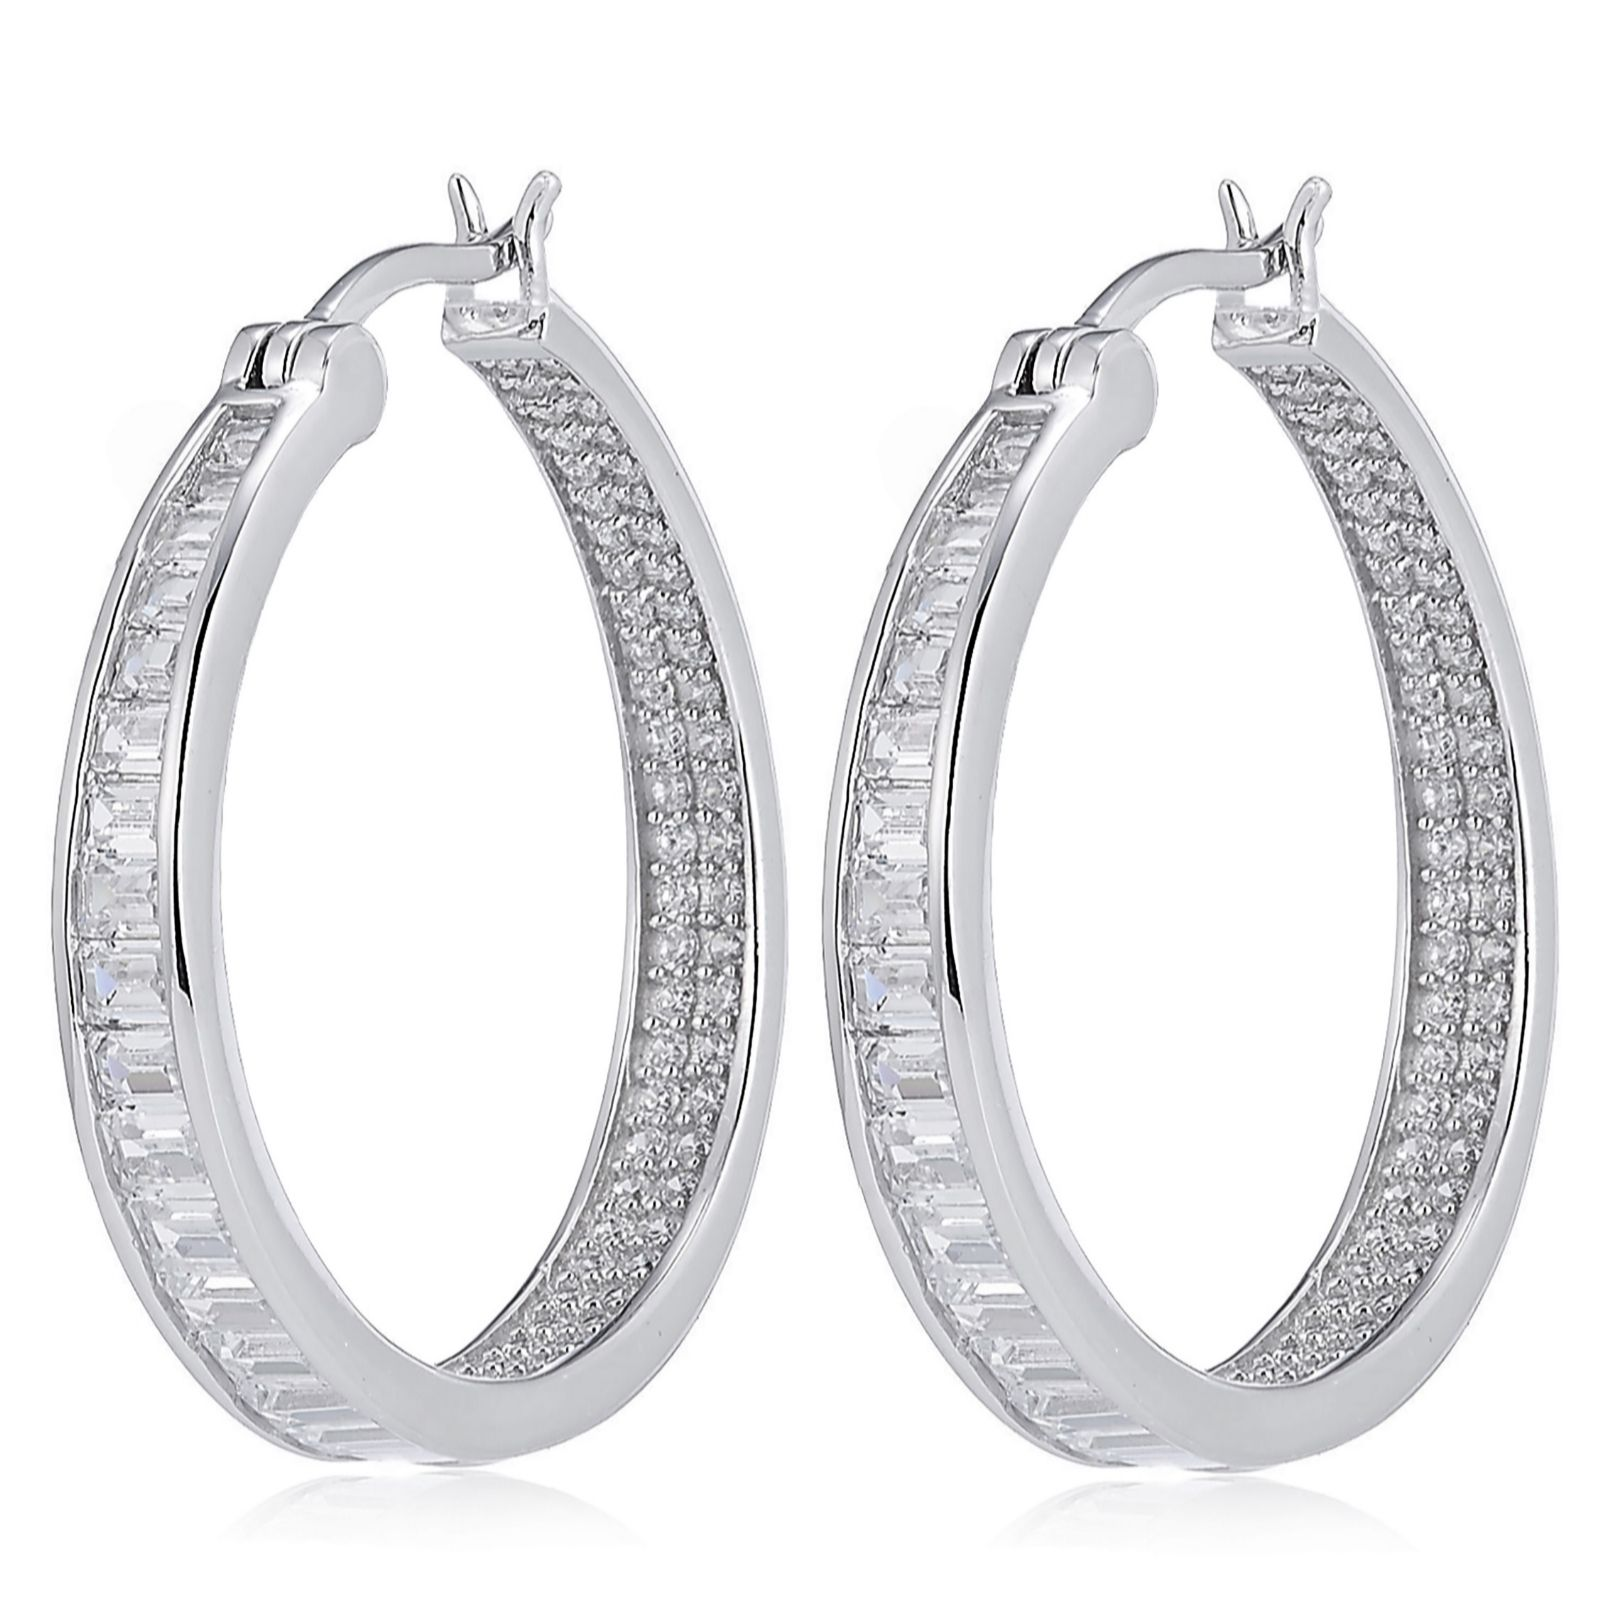 8a46ee60b Diamonique 1.9ct tw Mixed Cut Inside Out Hoop Earrings Sterling ...